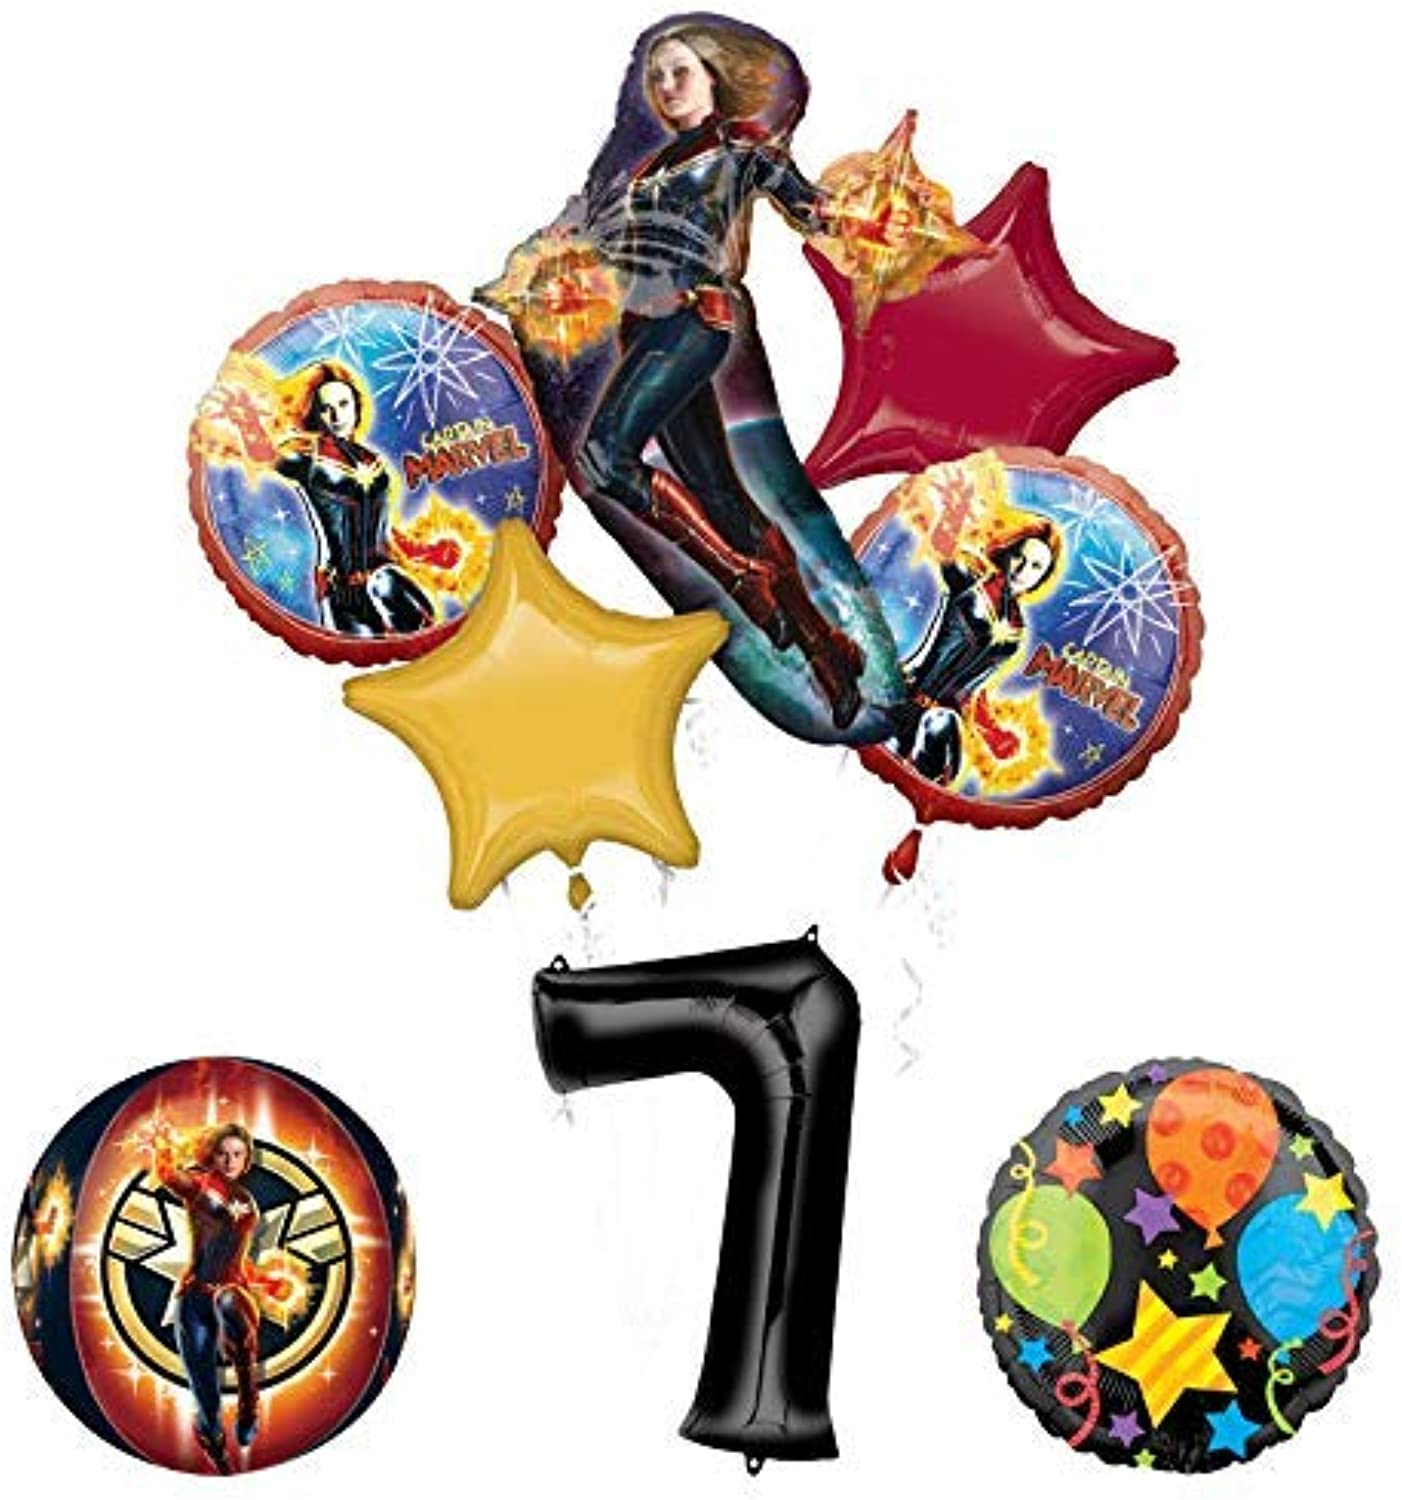 Mayflower Products Captain Marvel 7th Birthday Party Supplies Jubilee and Orbz Balloon Bouquet Decorations